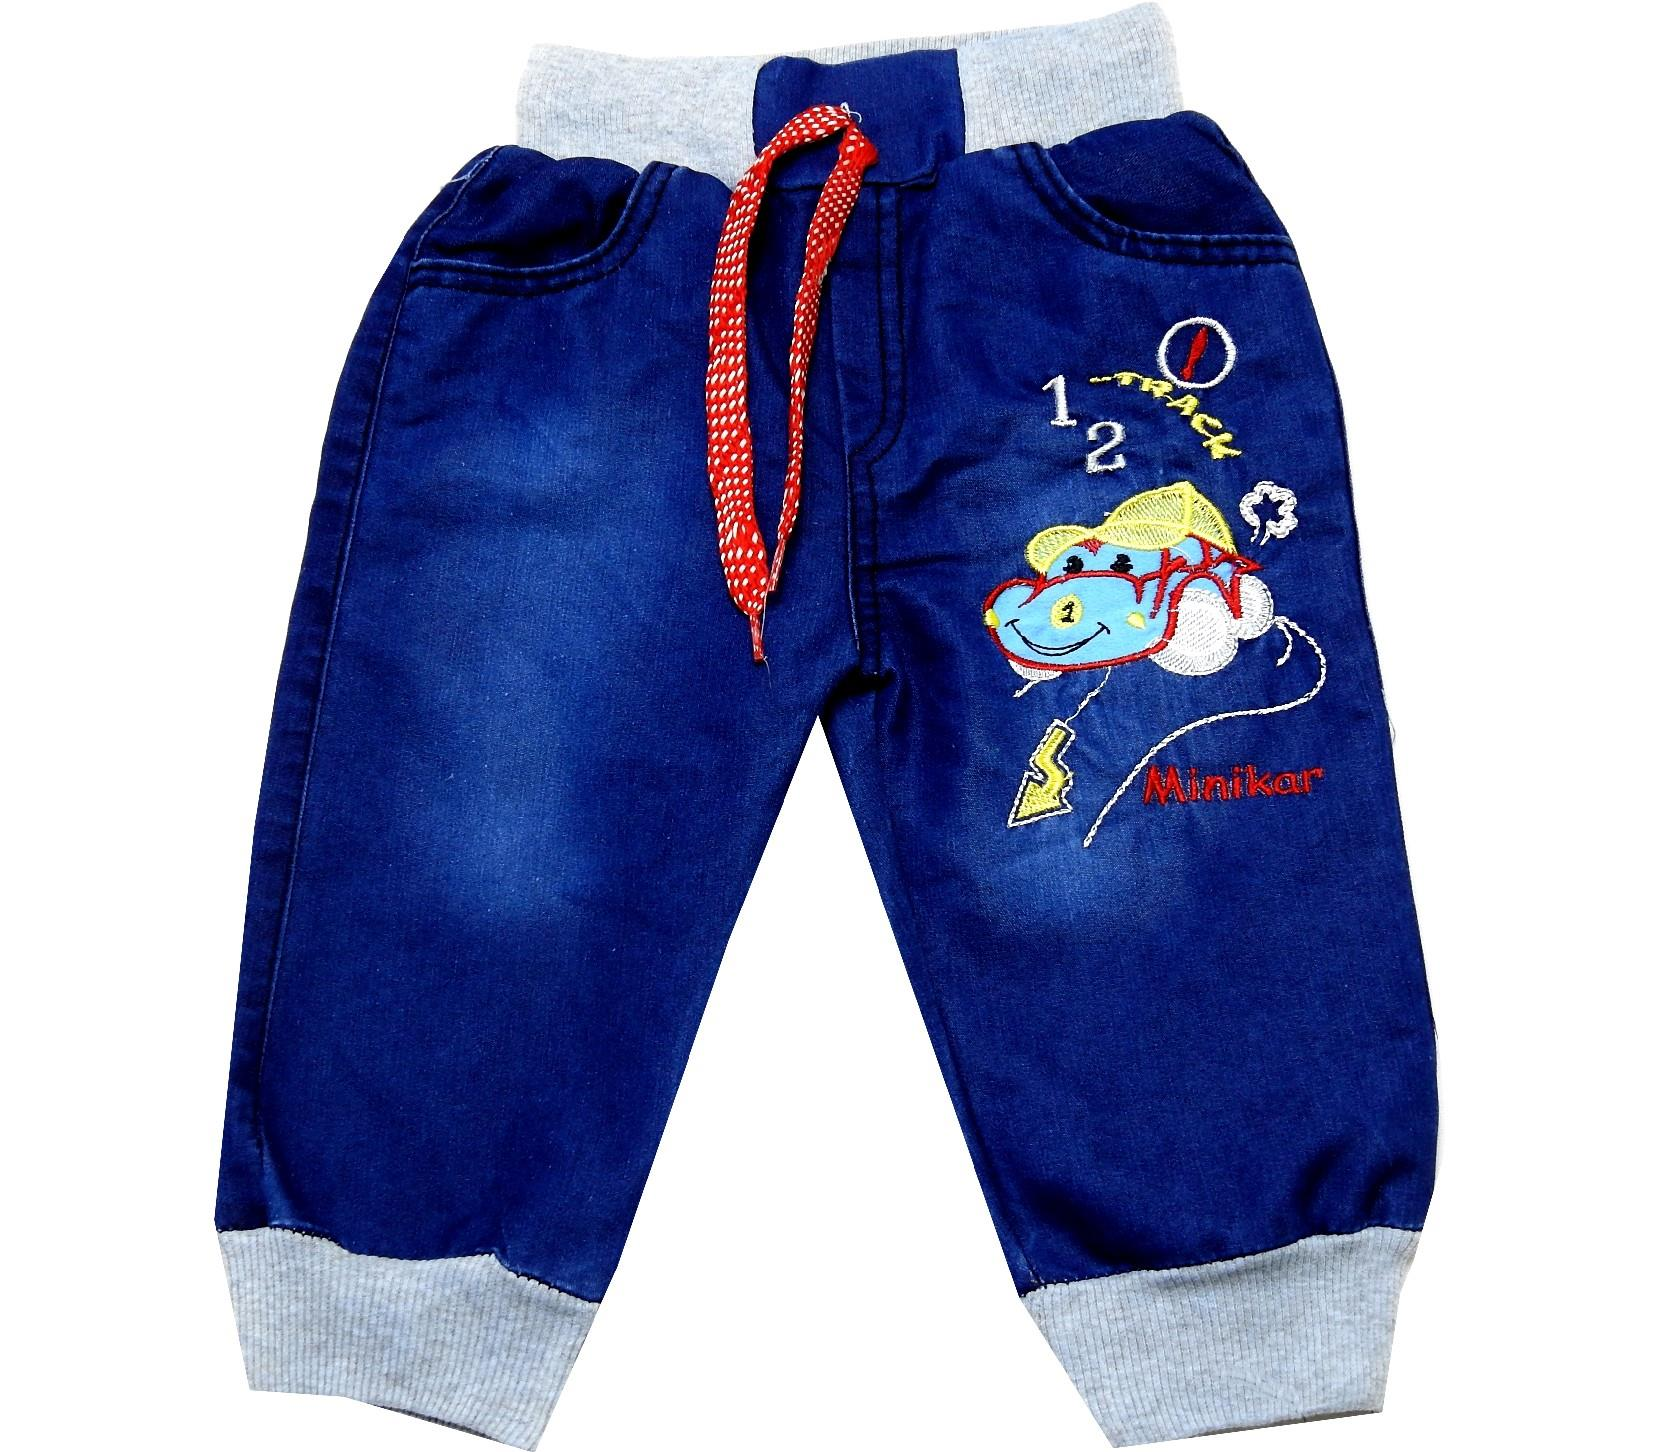 PRINTED DESIGN JEANS PANTS (1-2-3-4 AGE)